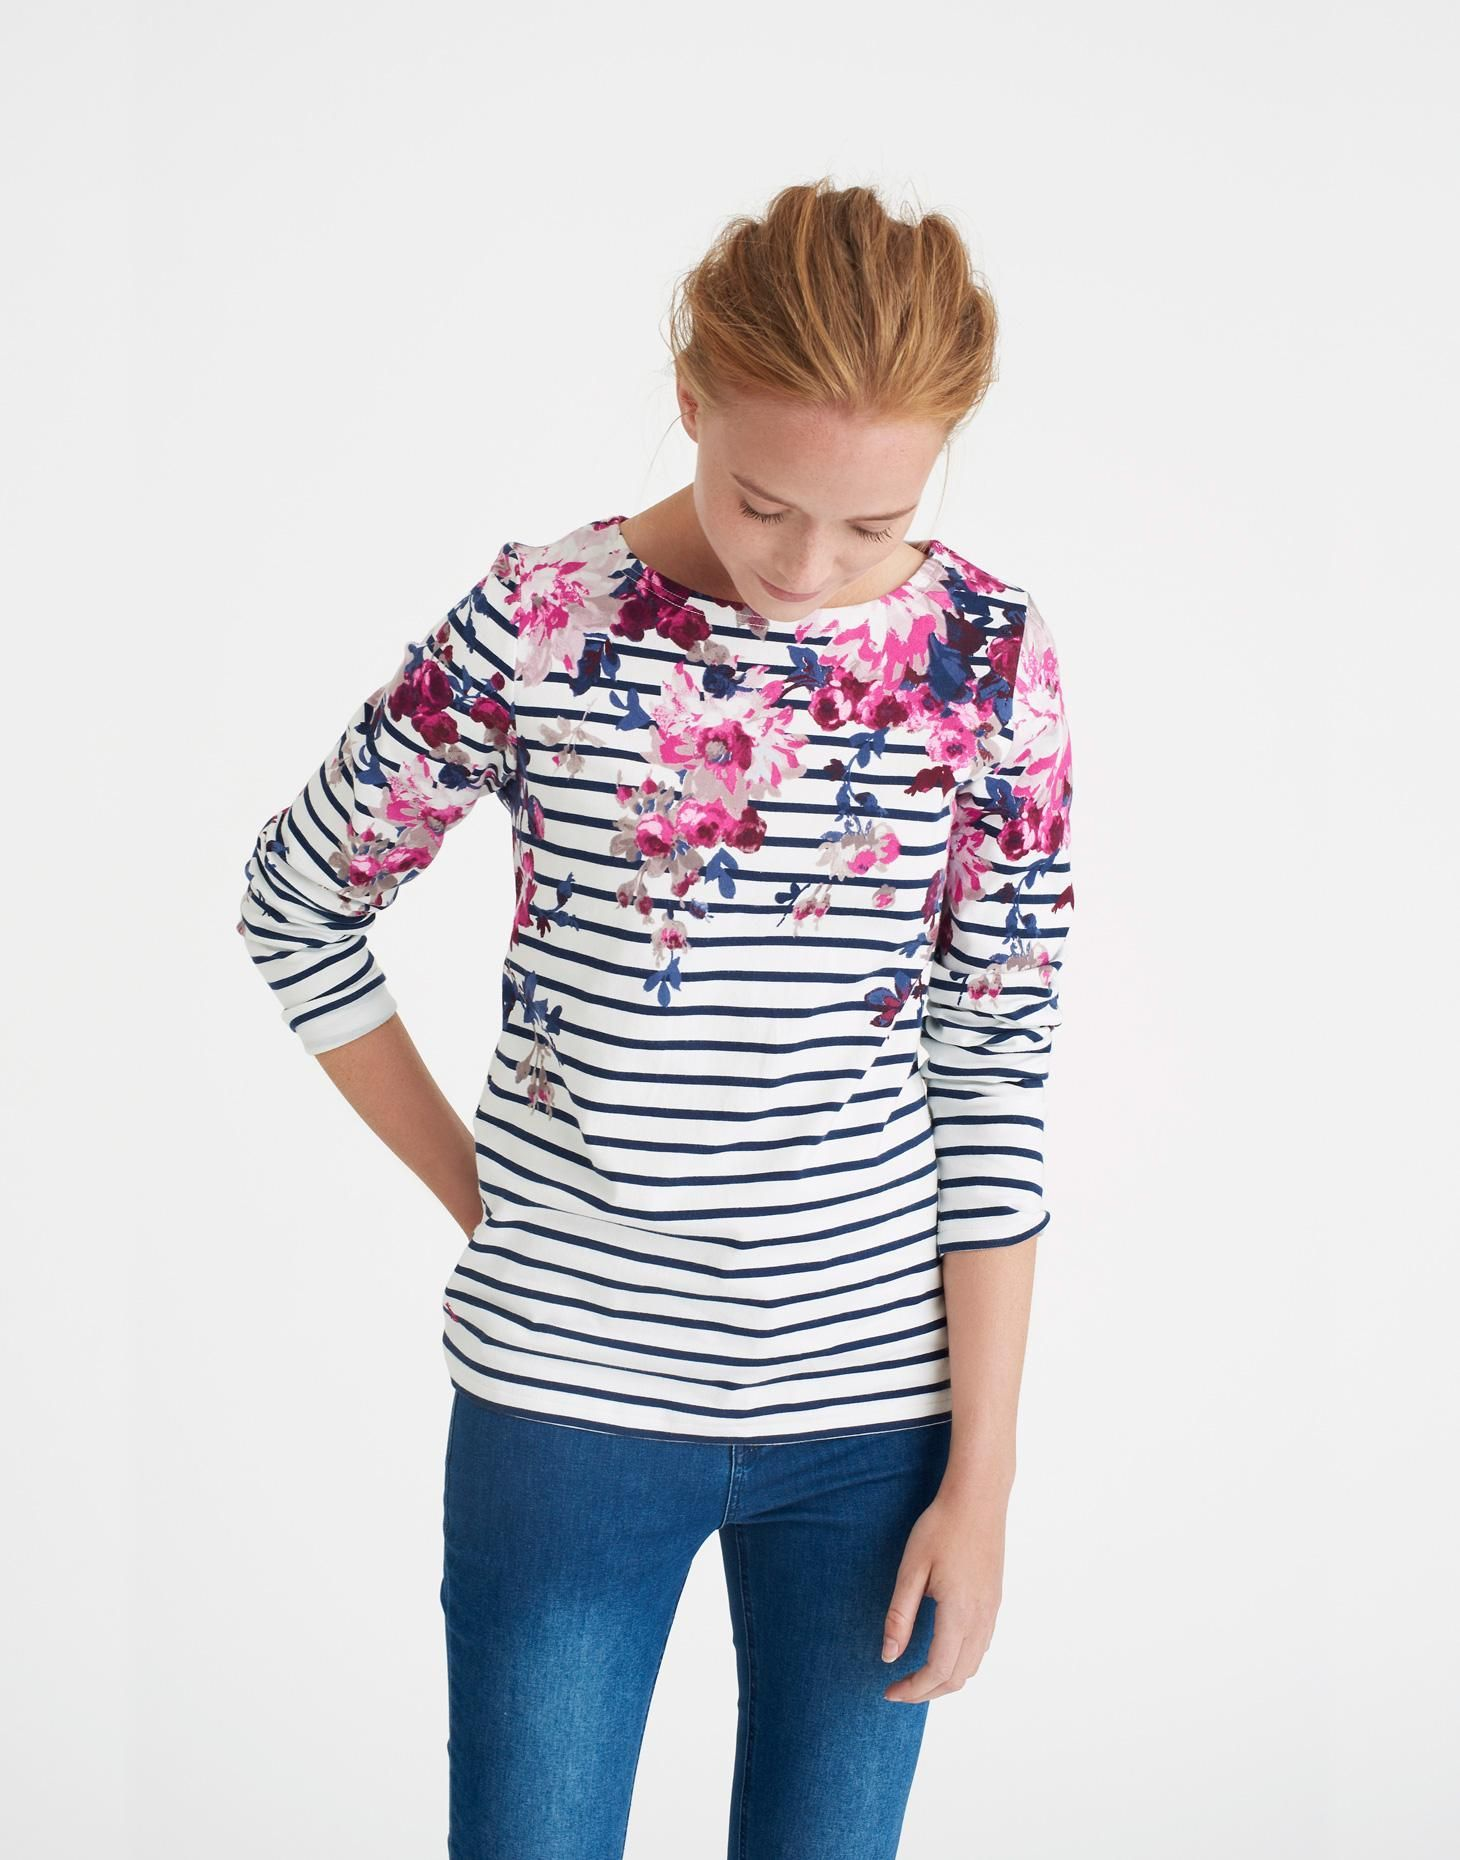 VARIOUS SIZES GREY FLORAL JOULES HARBOUR LONG SLEEVE TOP T SHIRT NEW //TAGS